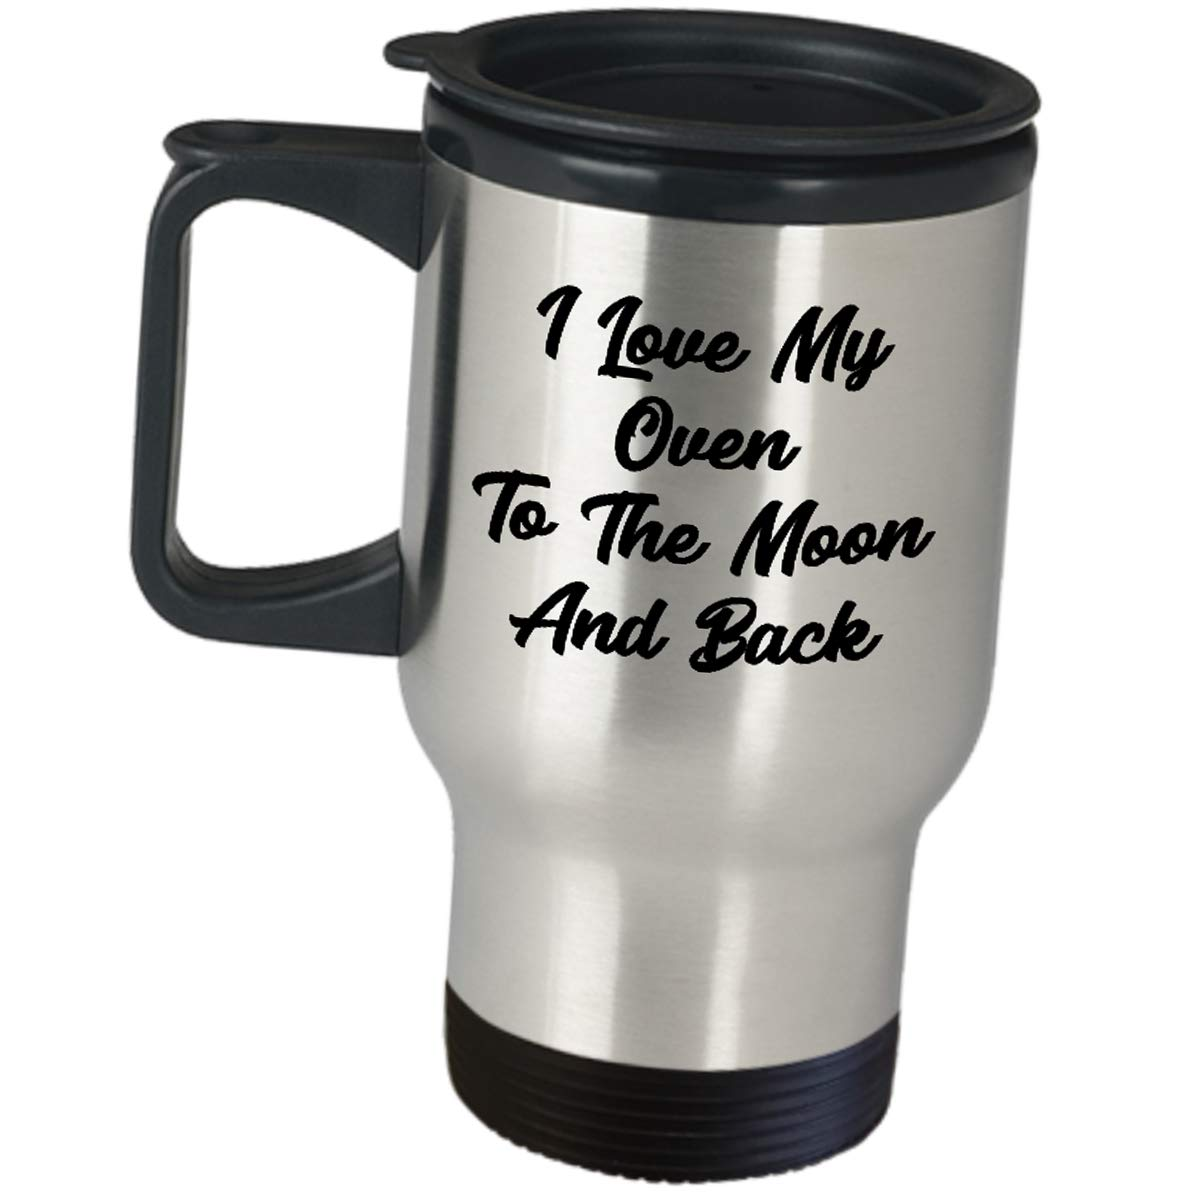 Appreciation Gift Idea For Baker - I Love My Oven To The Moon And Back - Cute Gag Gifts Coffee Tumbler Insulated Travel Mug Culinary School Cook Cake Decorator Student Dessert Professional Pastry Chef